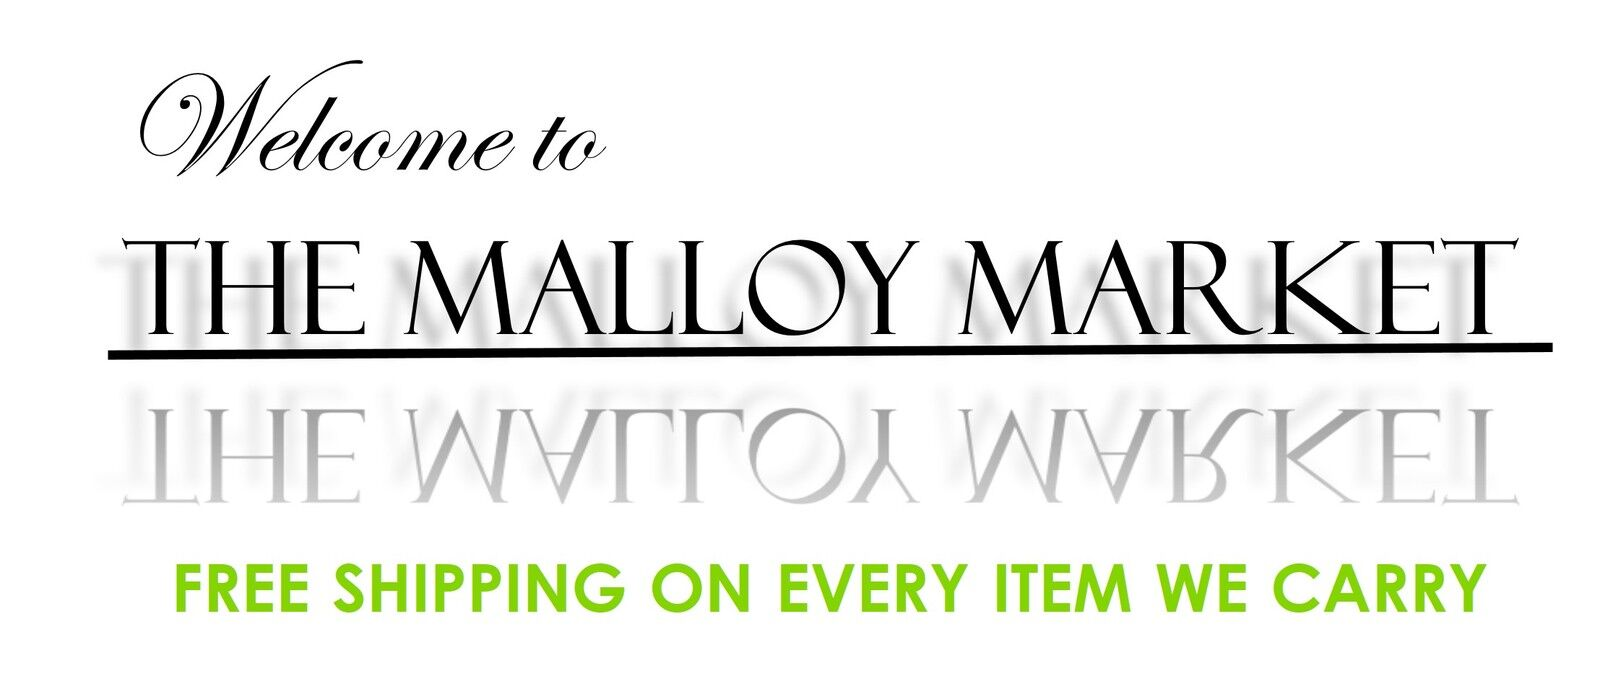 The Malloy Market